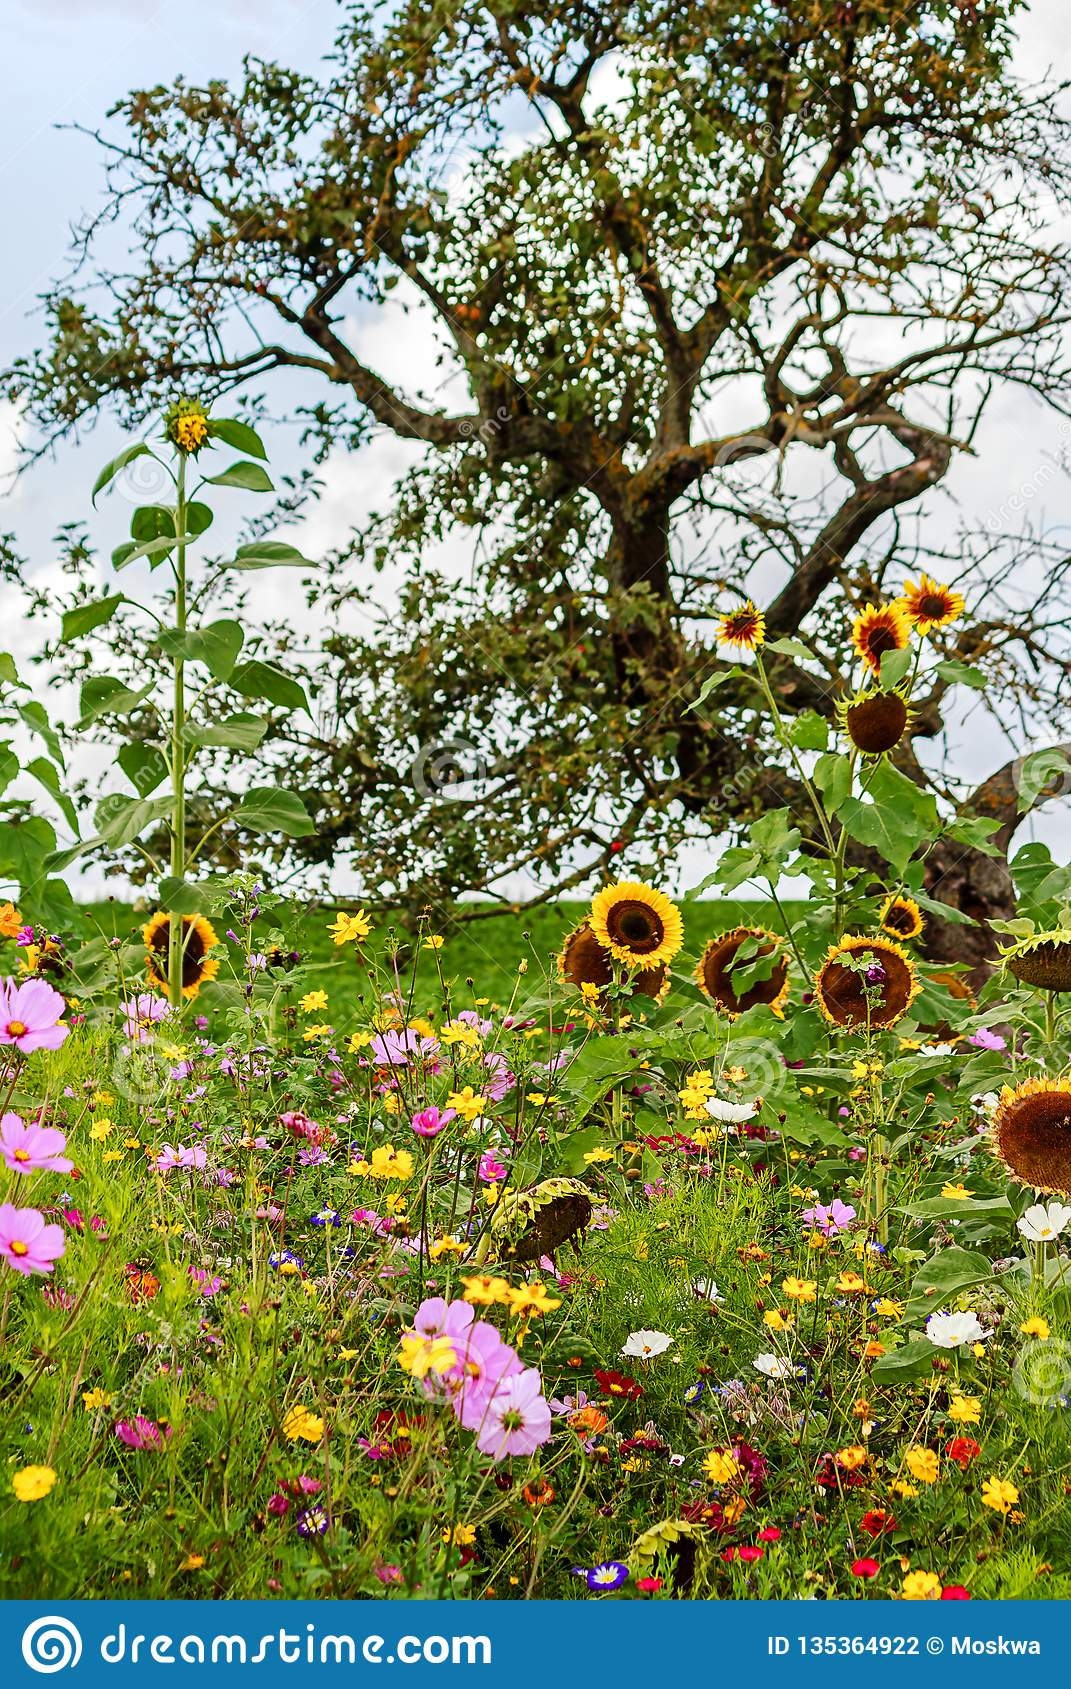 Colorful Flower Field With Wild Flowers Under The Apple Tree Stock Photo Image Of Field Eschscholzia 135364922